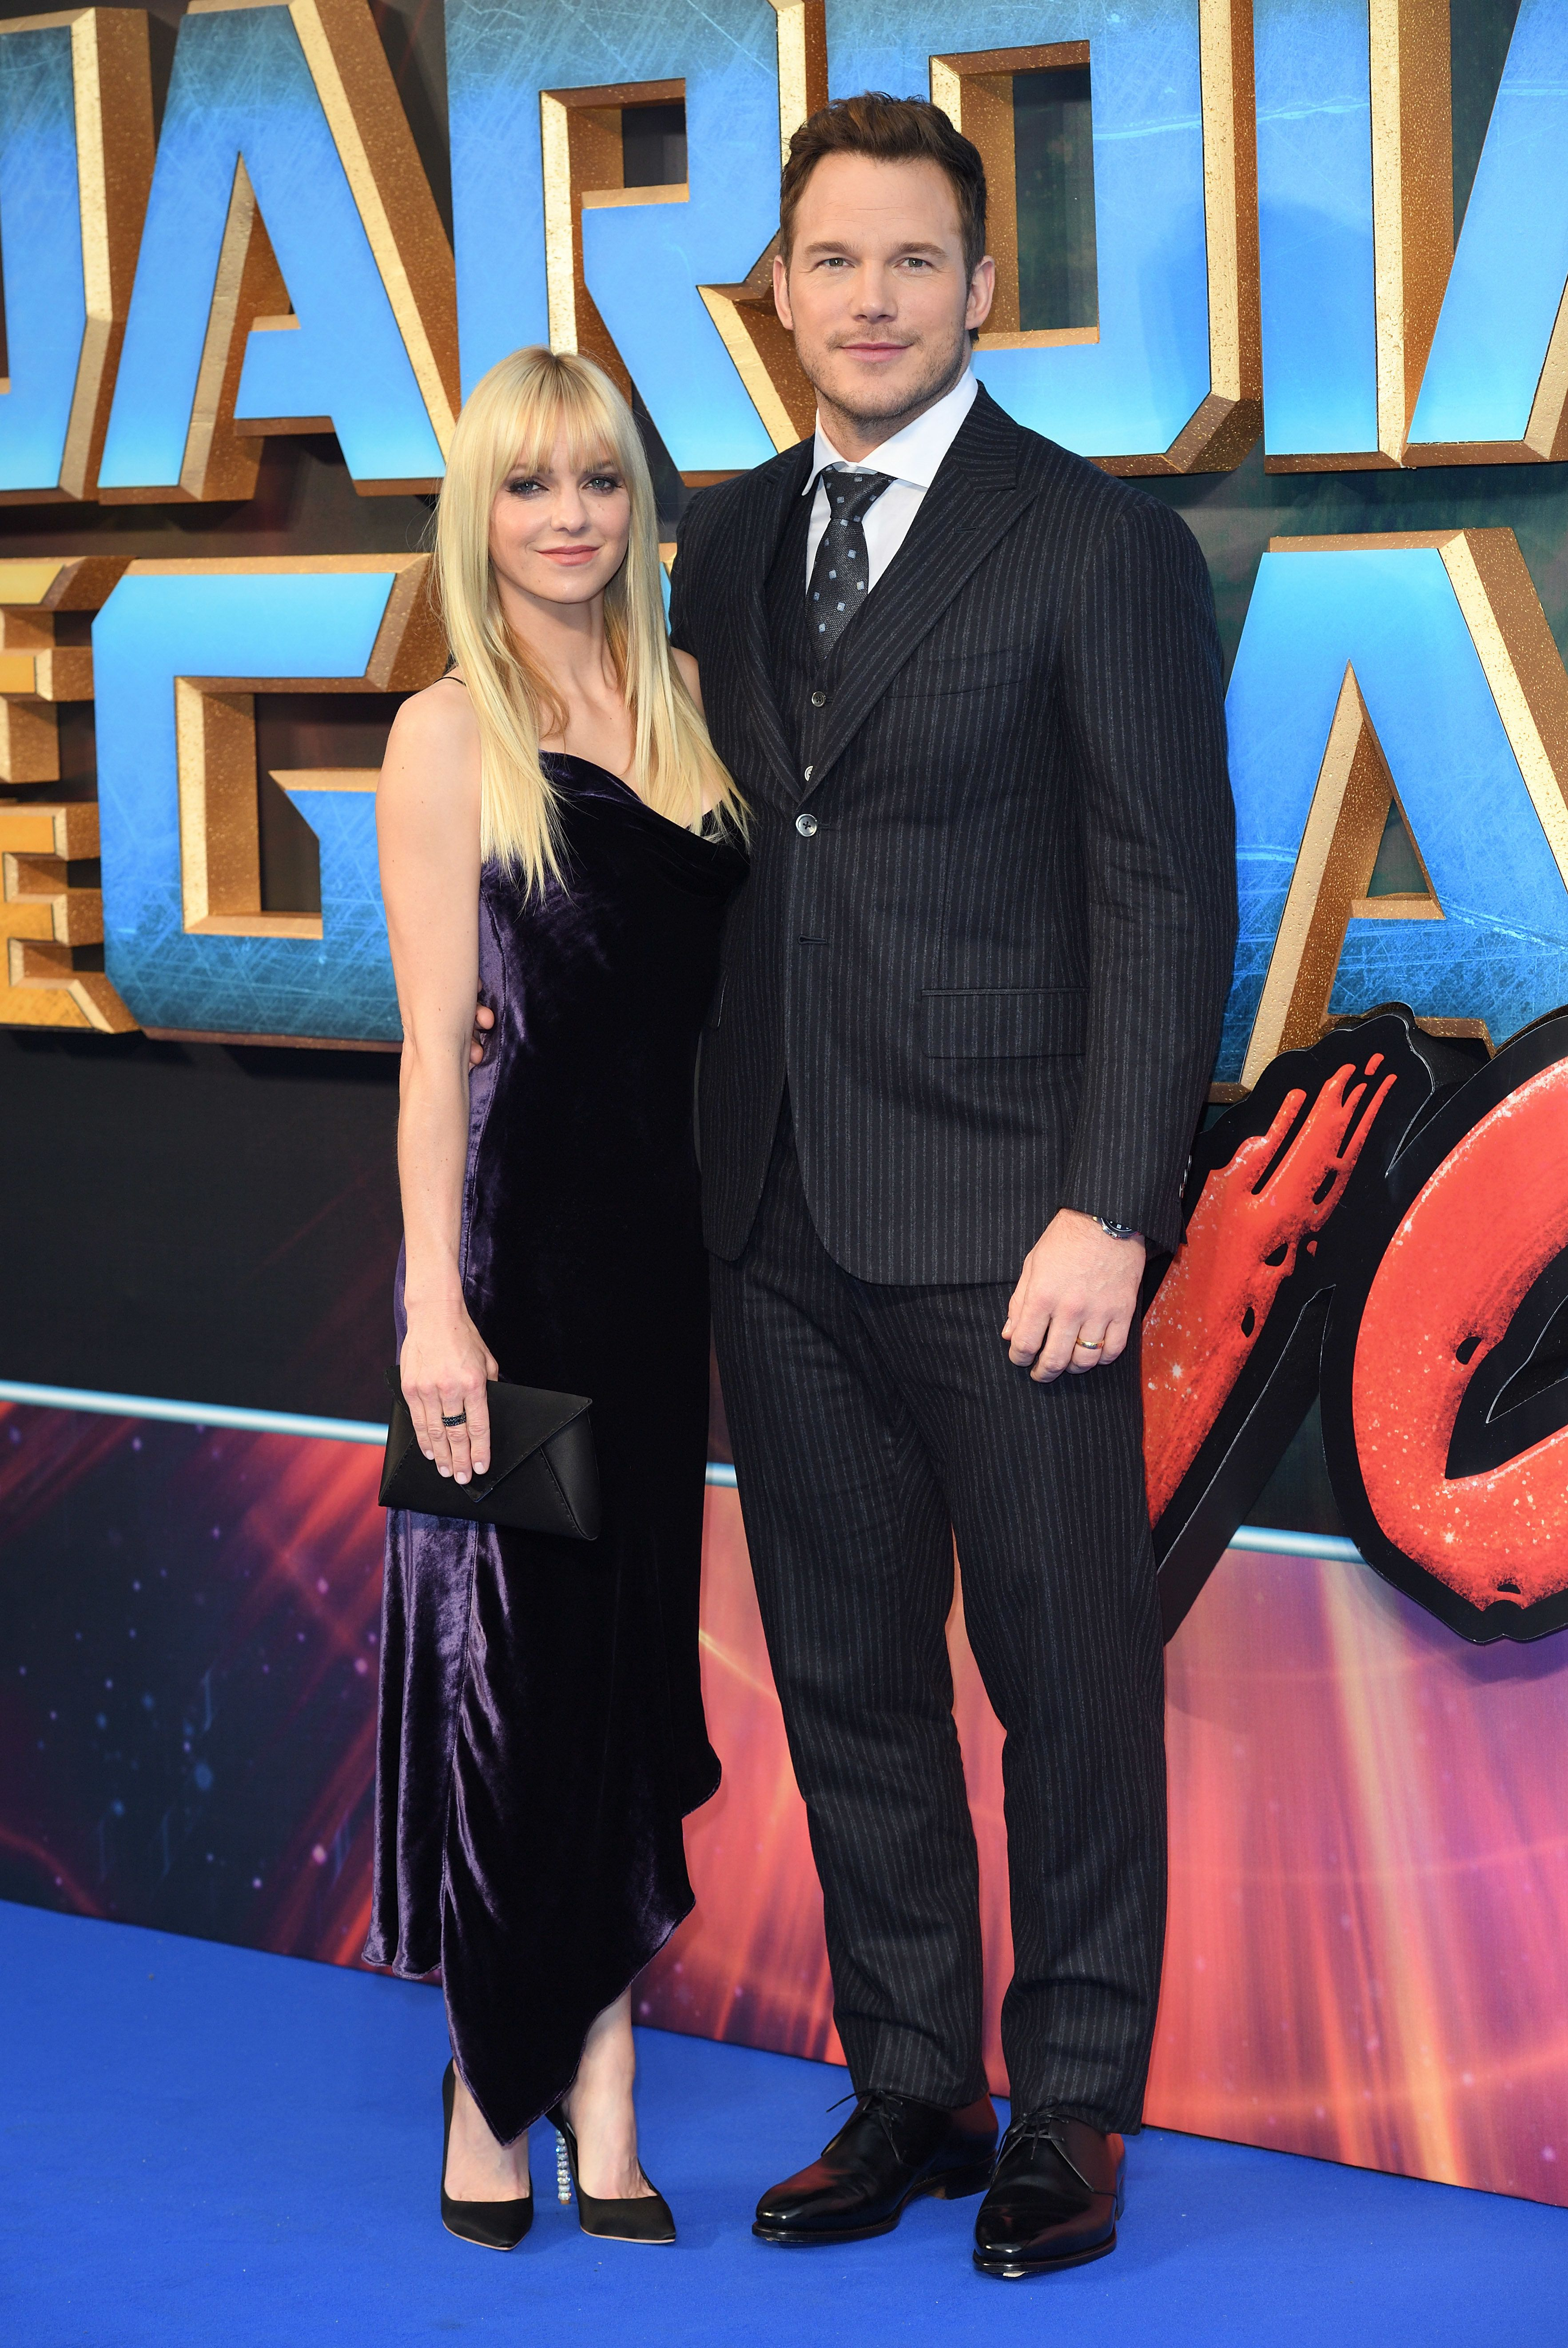 LONDON, ENGLAND - APRIL 24:  Anna Faris and Chris Pratt attend the European Gala screening of 'Guardians of the Galaxy Vol. 2' at Eventim Apollo on April 24, 2017 in London, United Kingdom.  (Photo by Karwai Tang/WireImage)